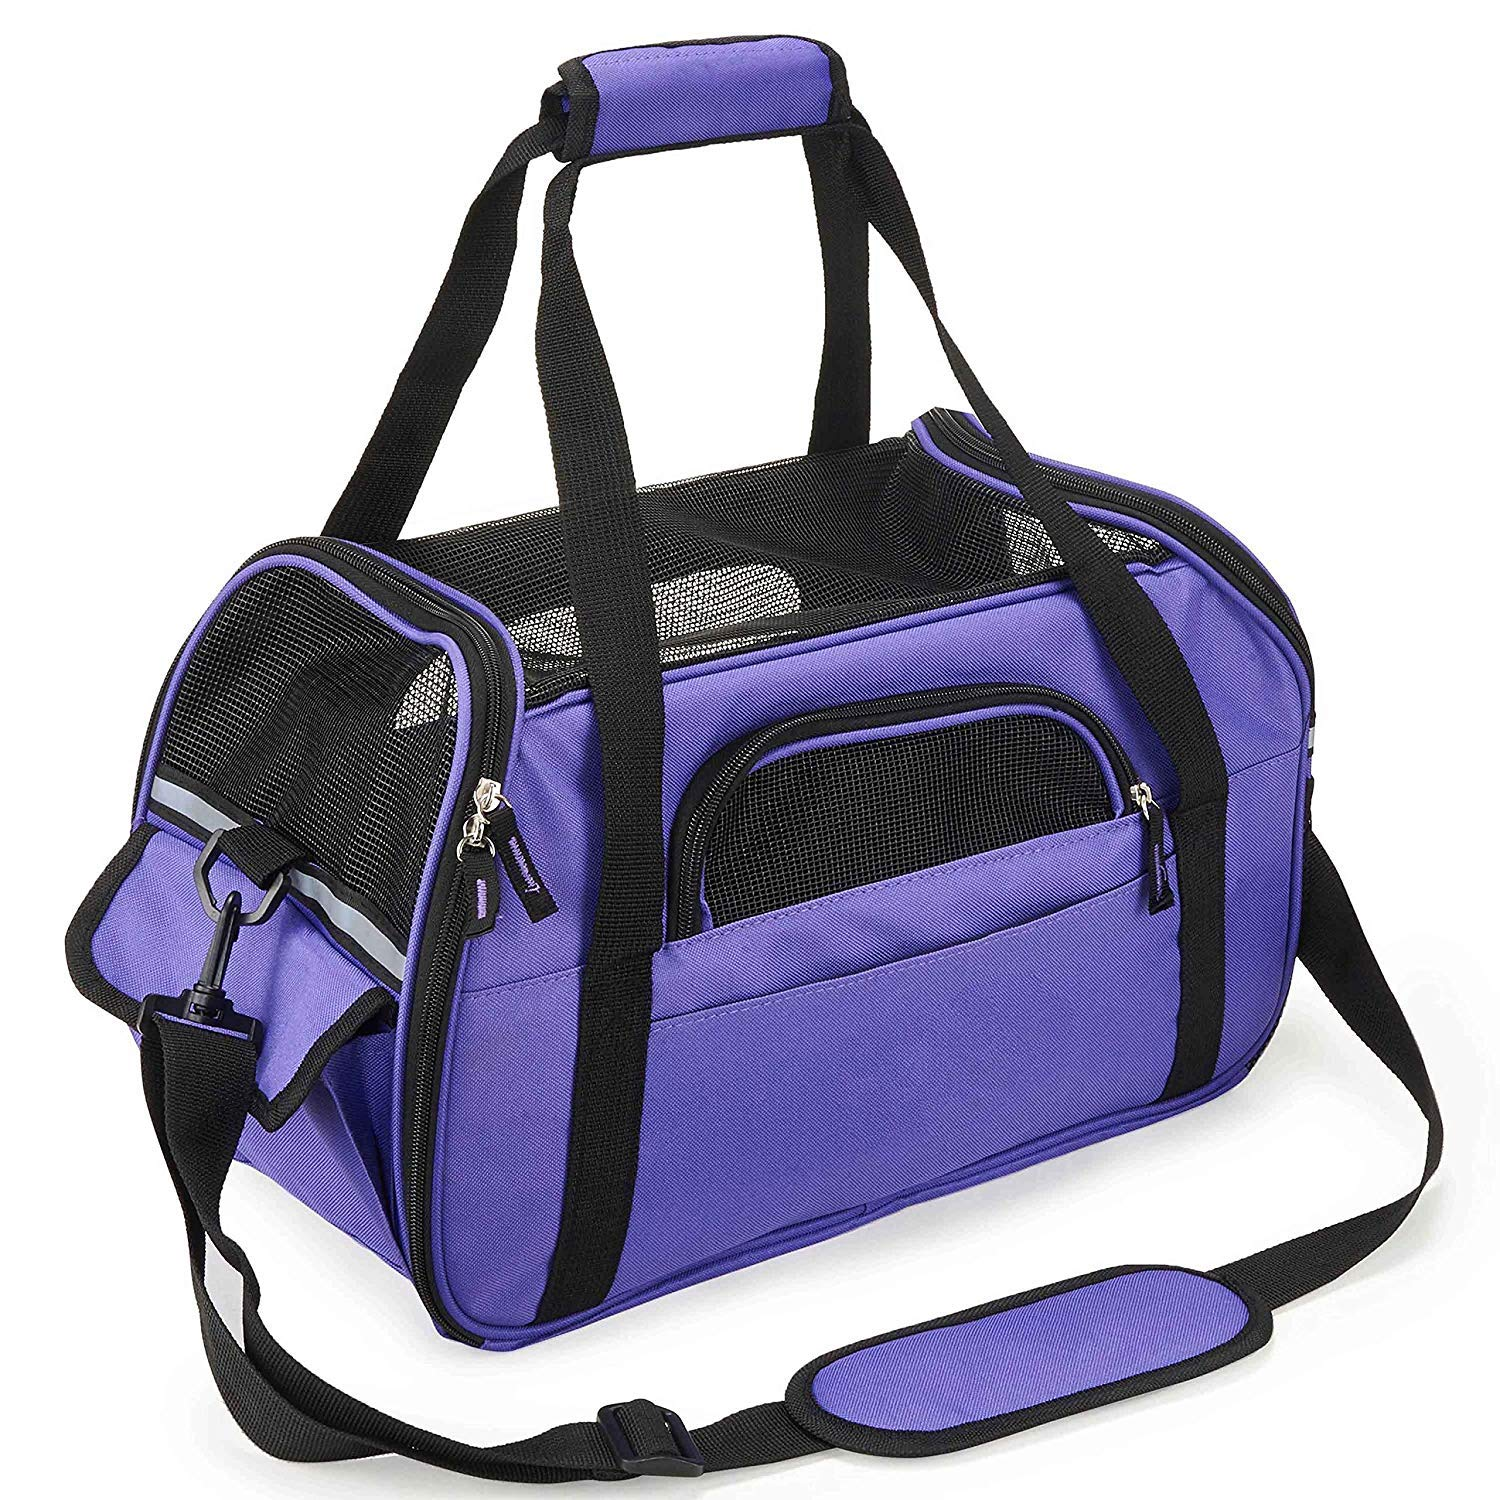 Purple S Purple S Pet Carrier Travel Soft Sided Bags Lightweight Fabric Padded Wide Shoulder Strip Hangbag for Puppy Rabbit Guinea Pig with Mesh Window Soft Cushion